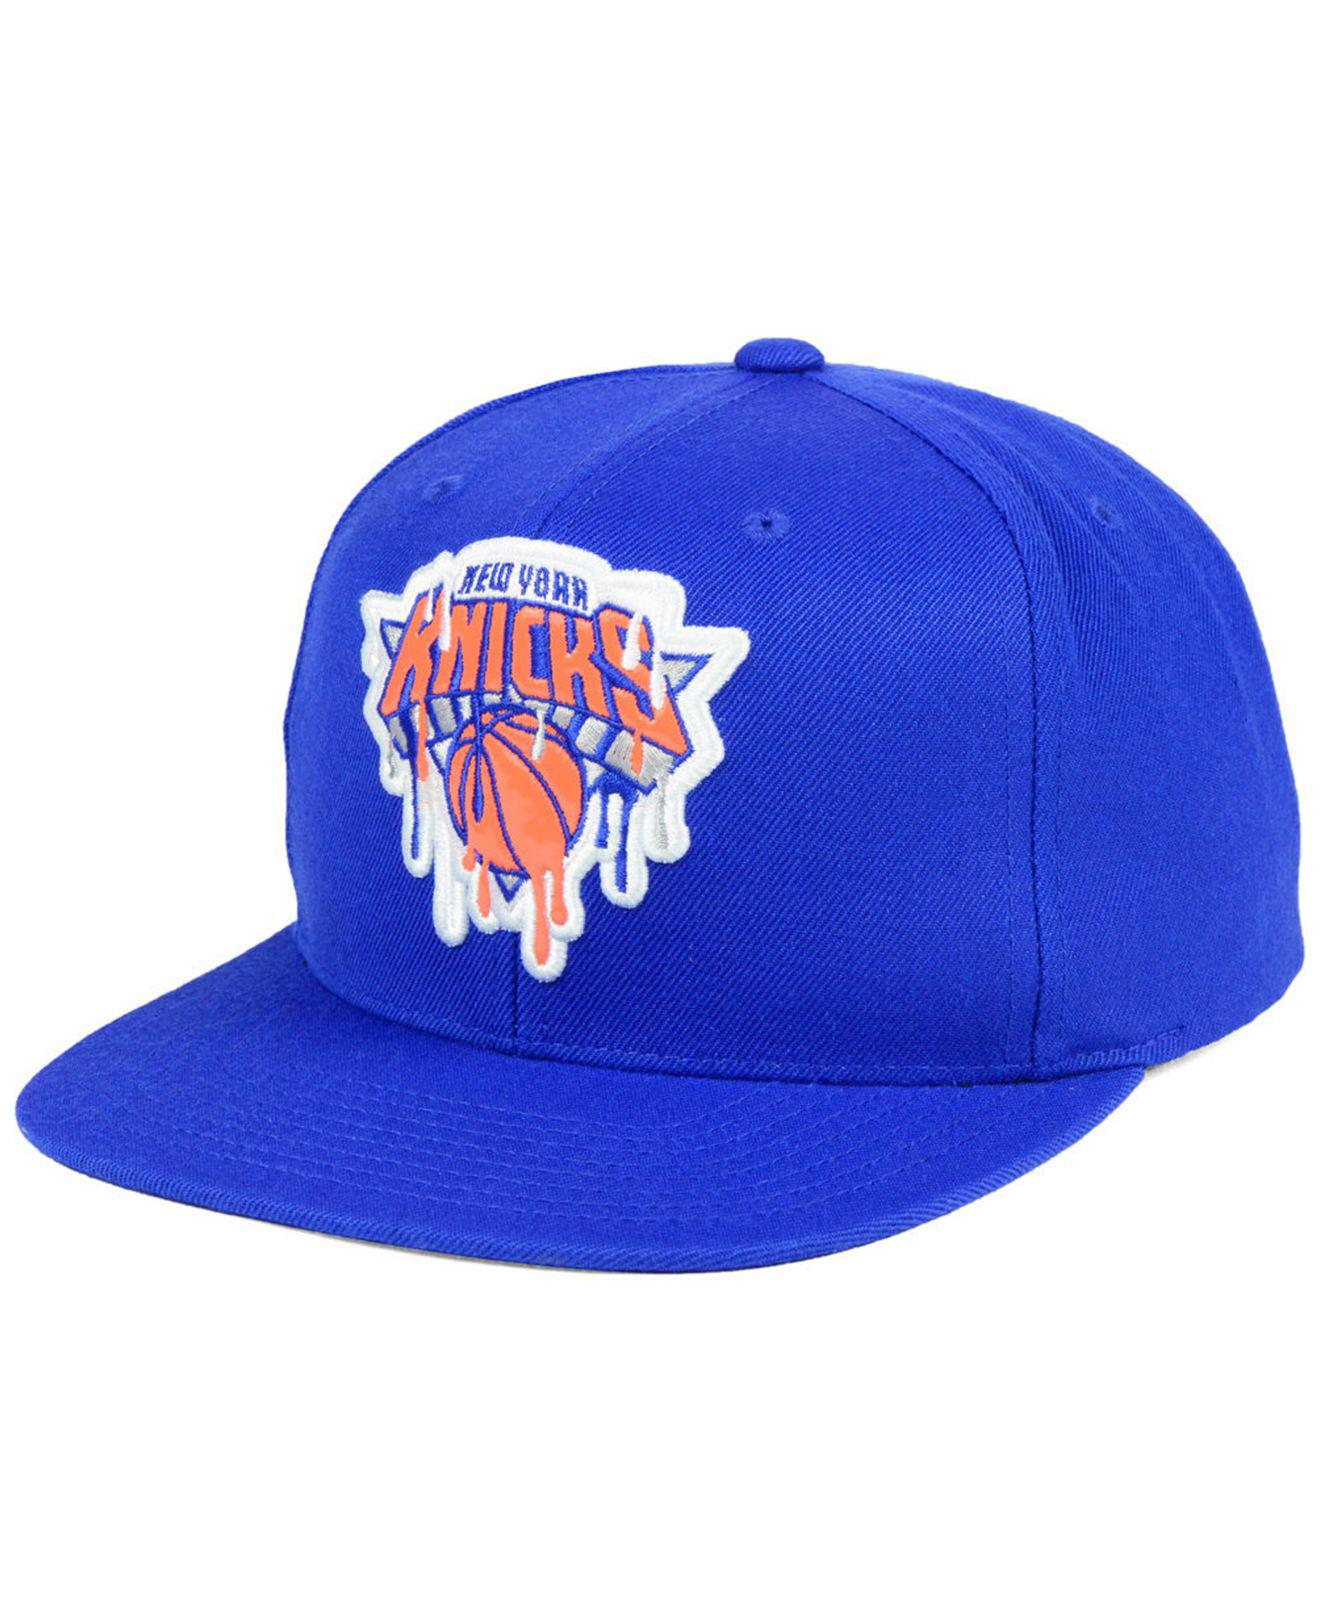 b7219357774 ... reduced lyst mitchell ness new york knicks dripped snapback cap in blue  57c81 70b27